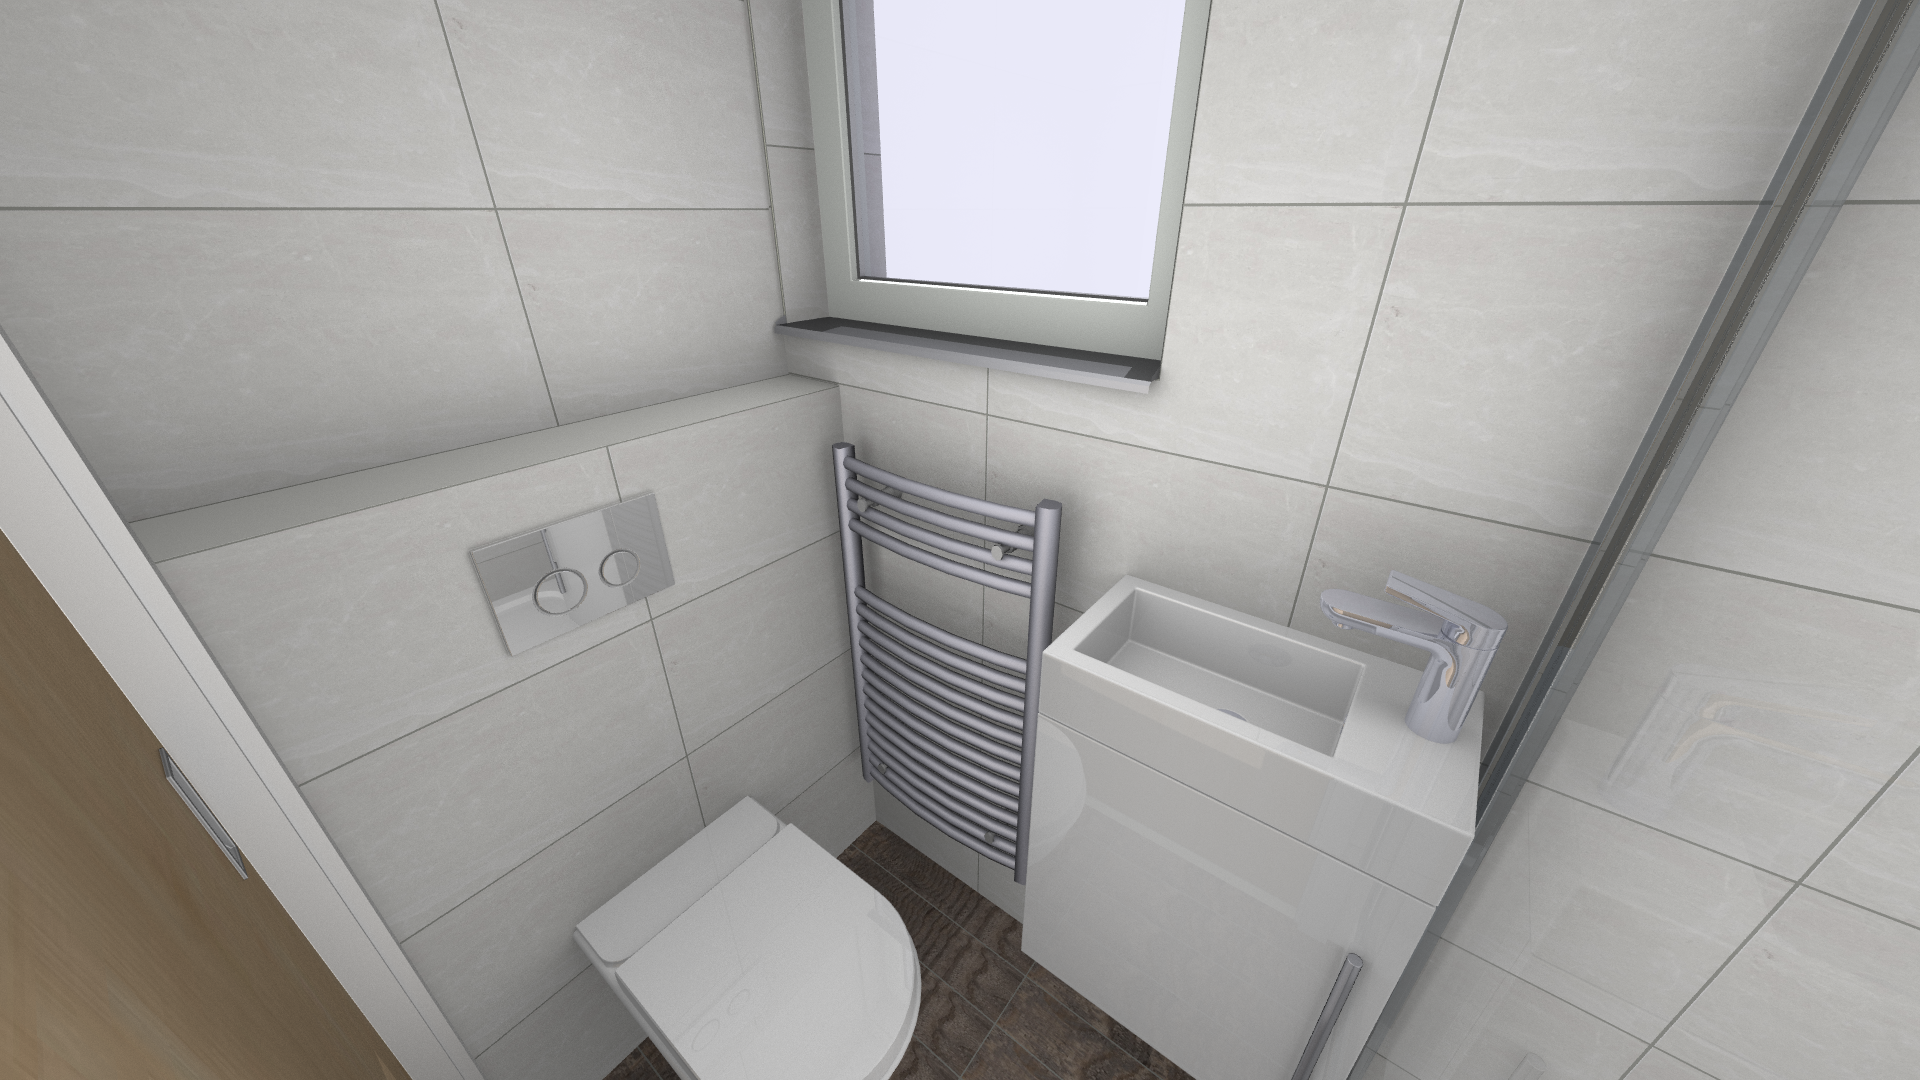 Linda and Pete Genower Shower Room View 2.png